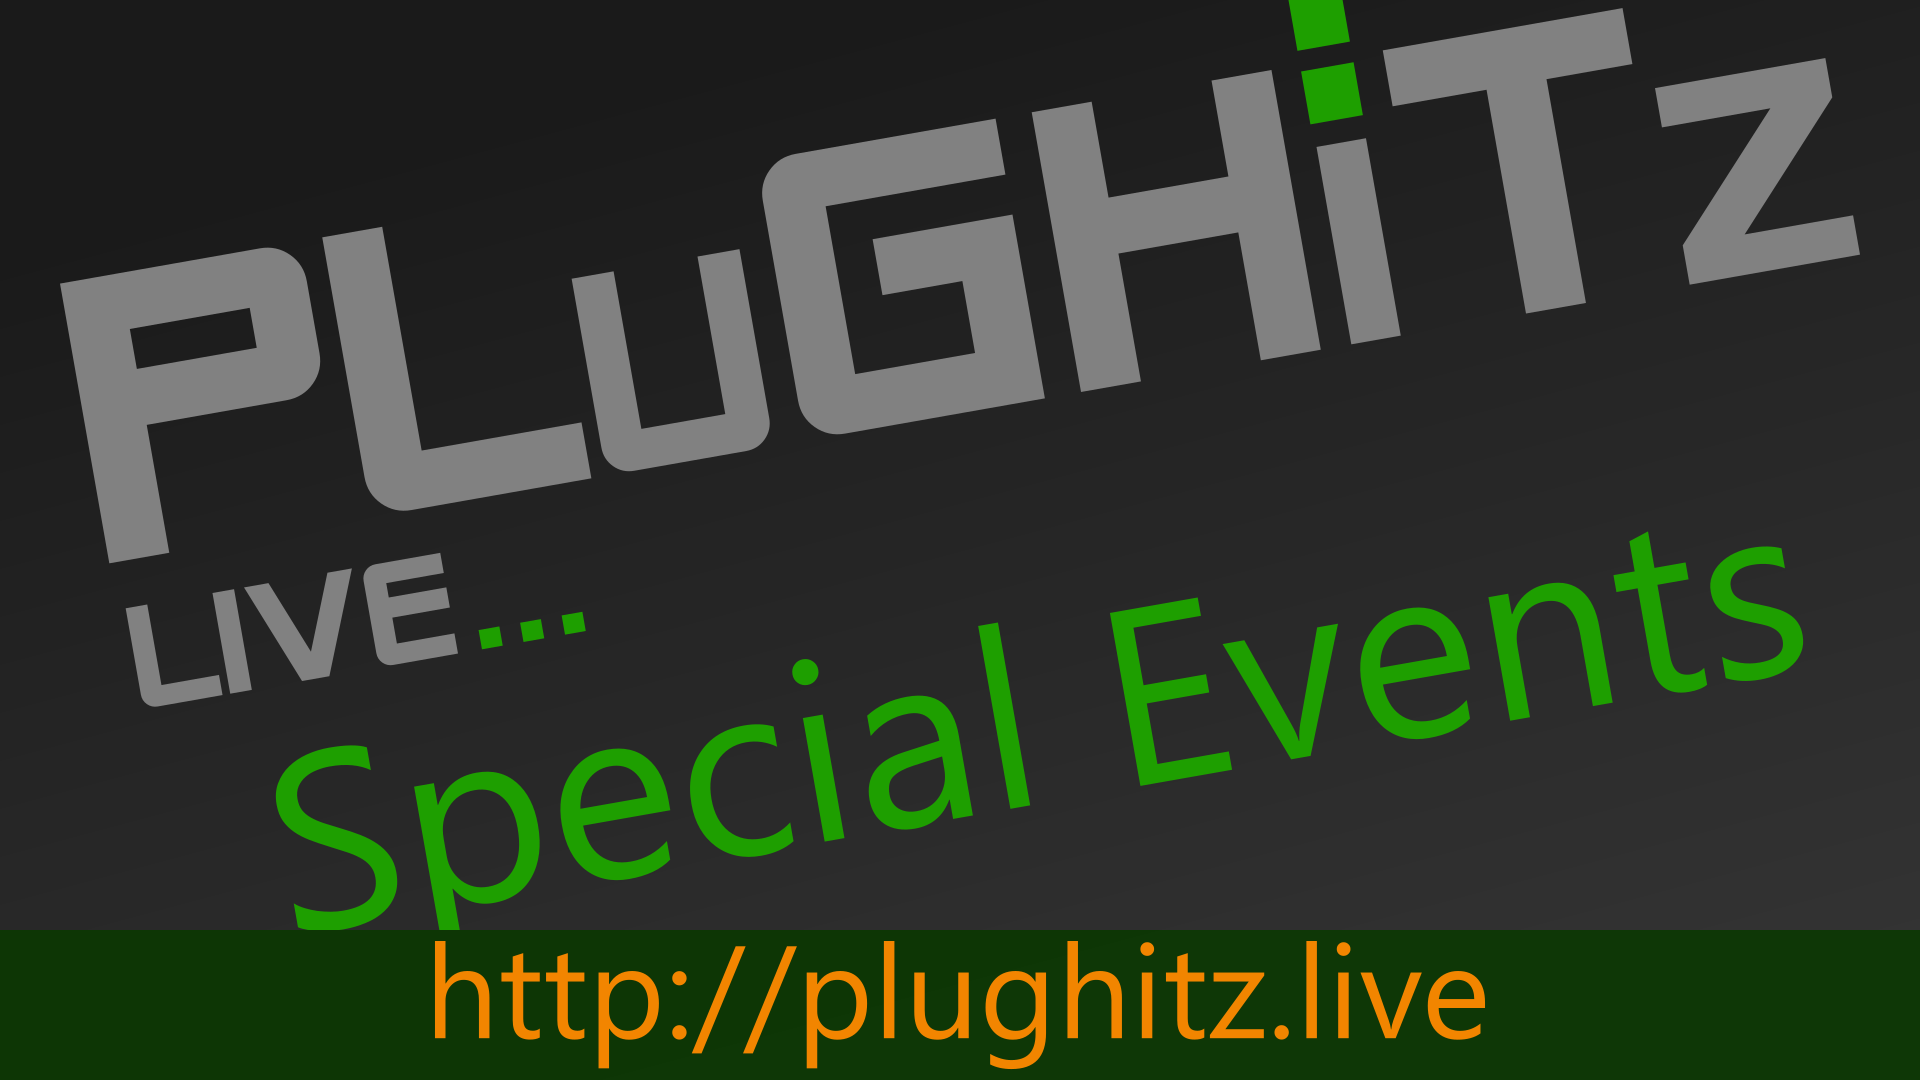 Plughitz Live Special Events Printed Circuit Board Prototype Product Photosprinted